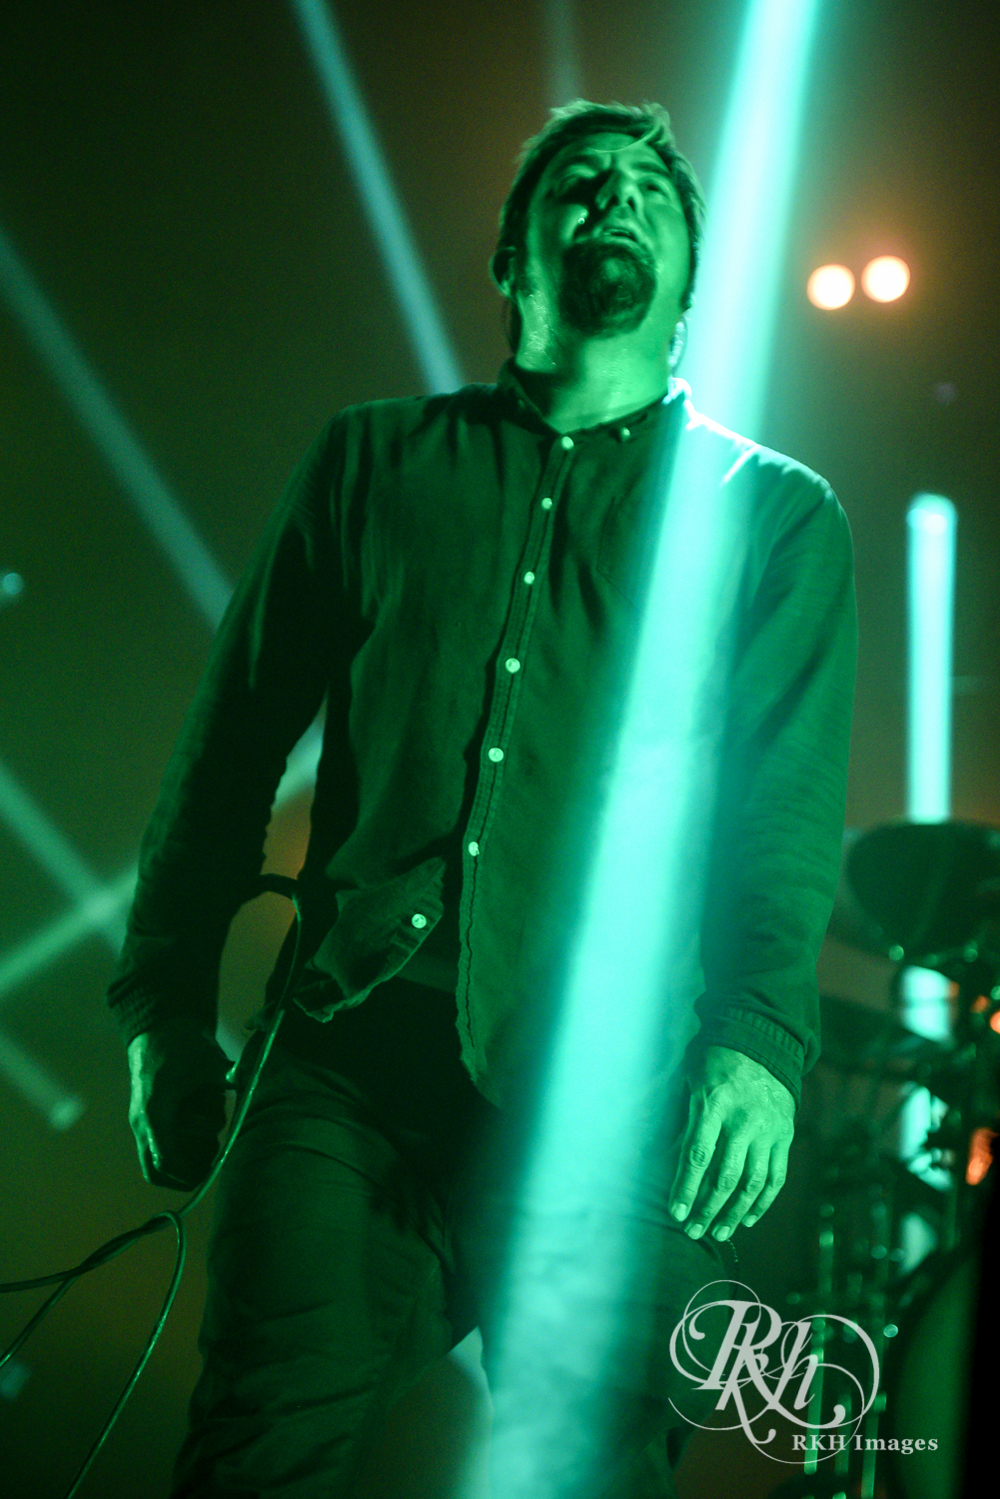 deftones rkh images (20 of 33).jpg